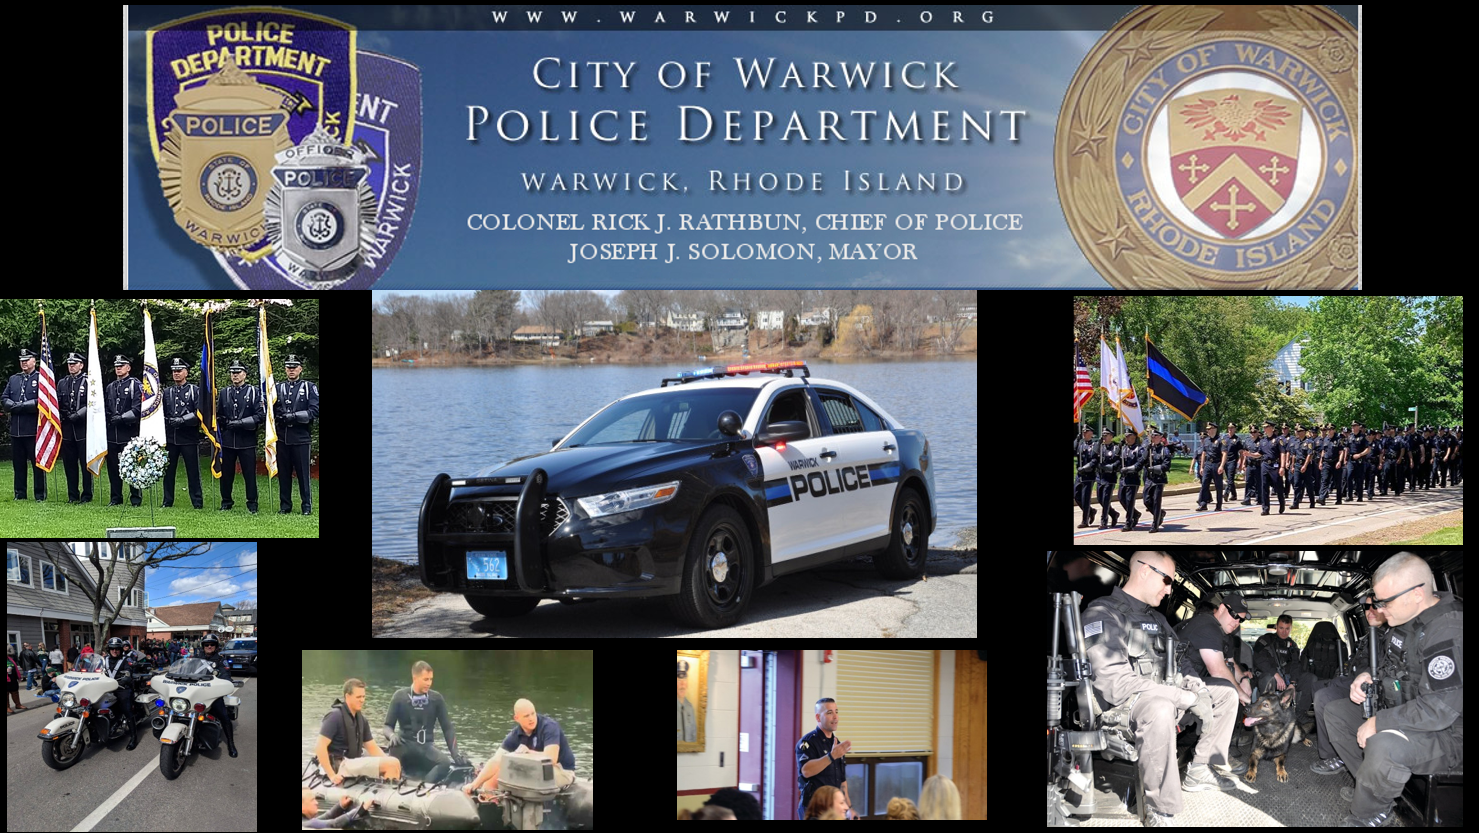 Warwick, RI Police Jobs - Entry Level | PoliceApp